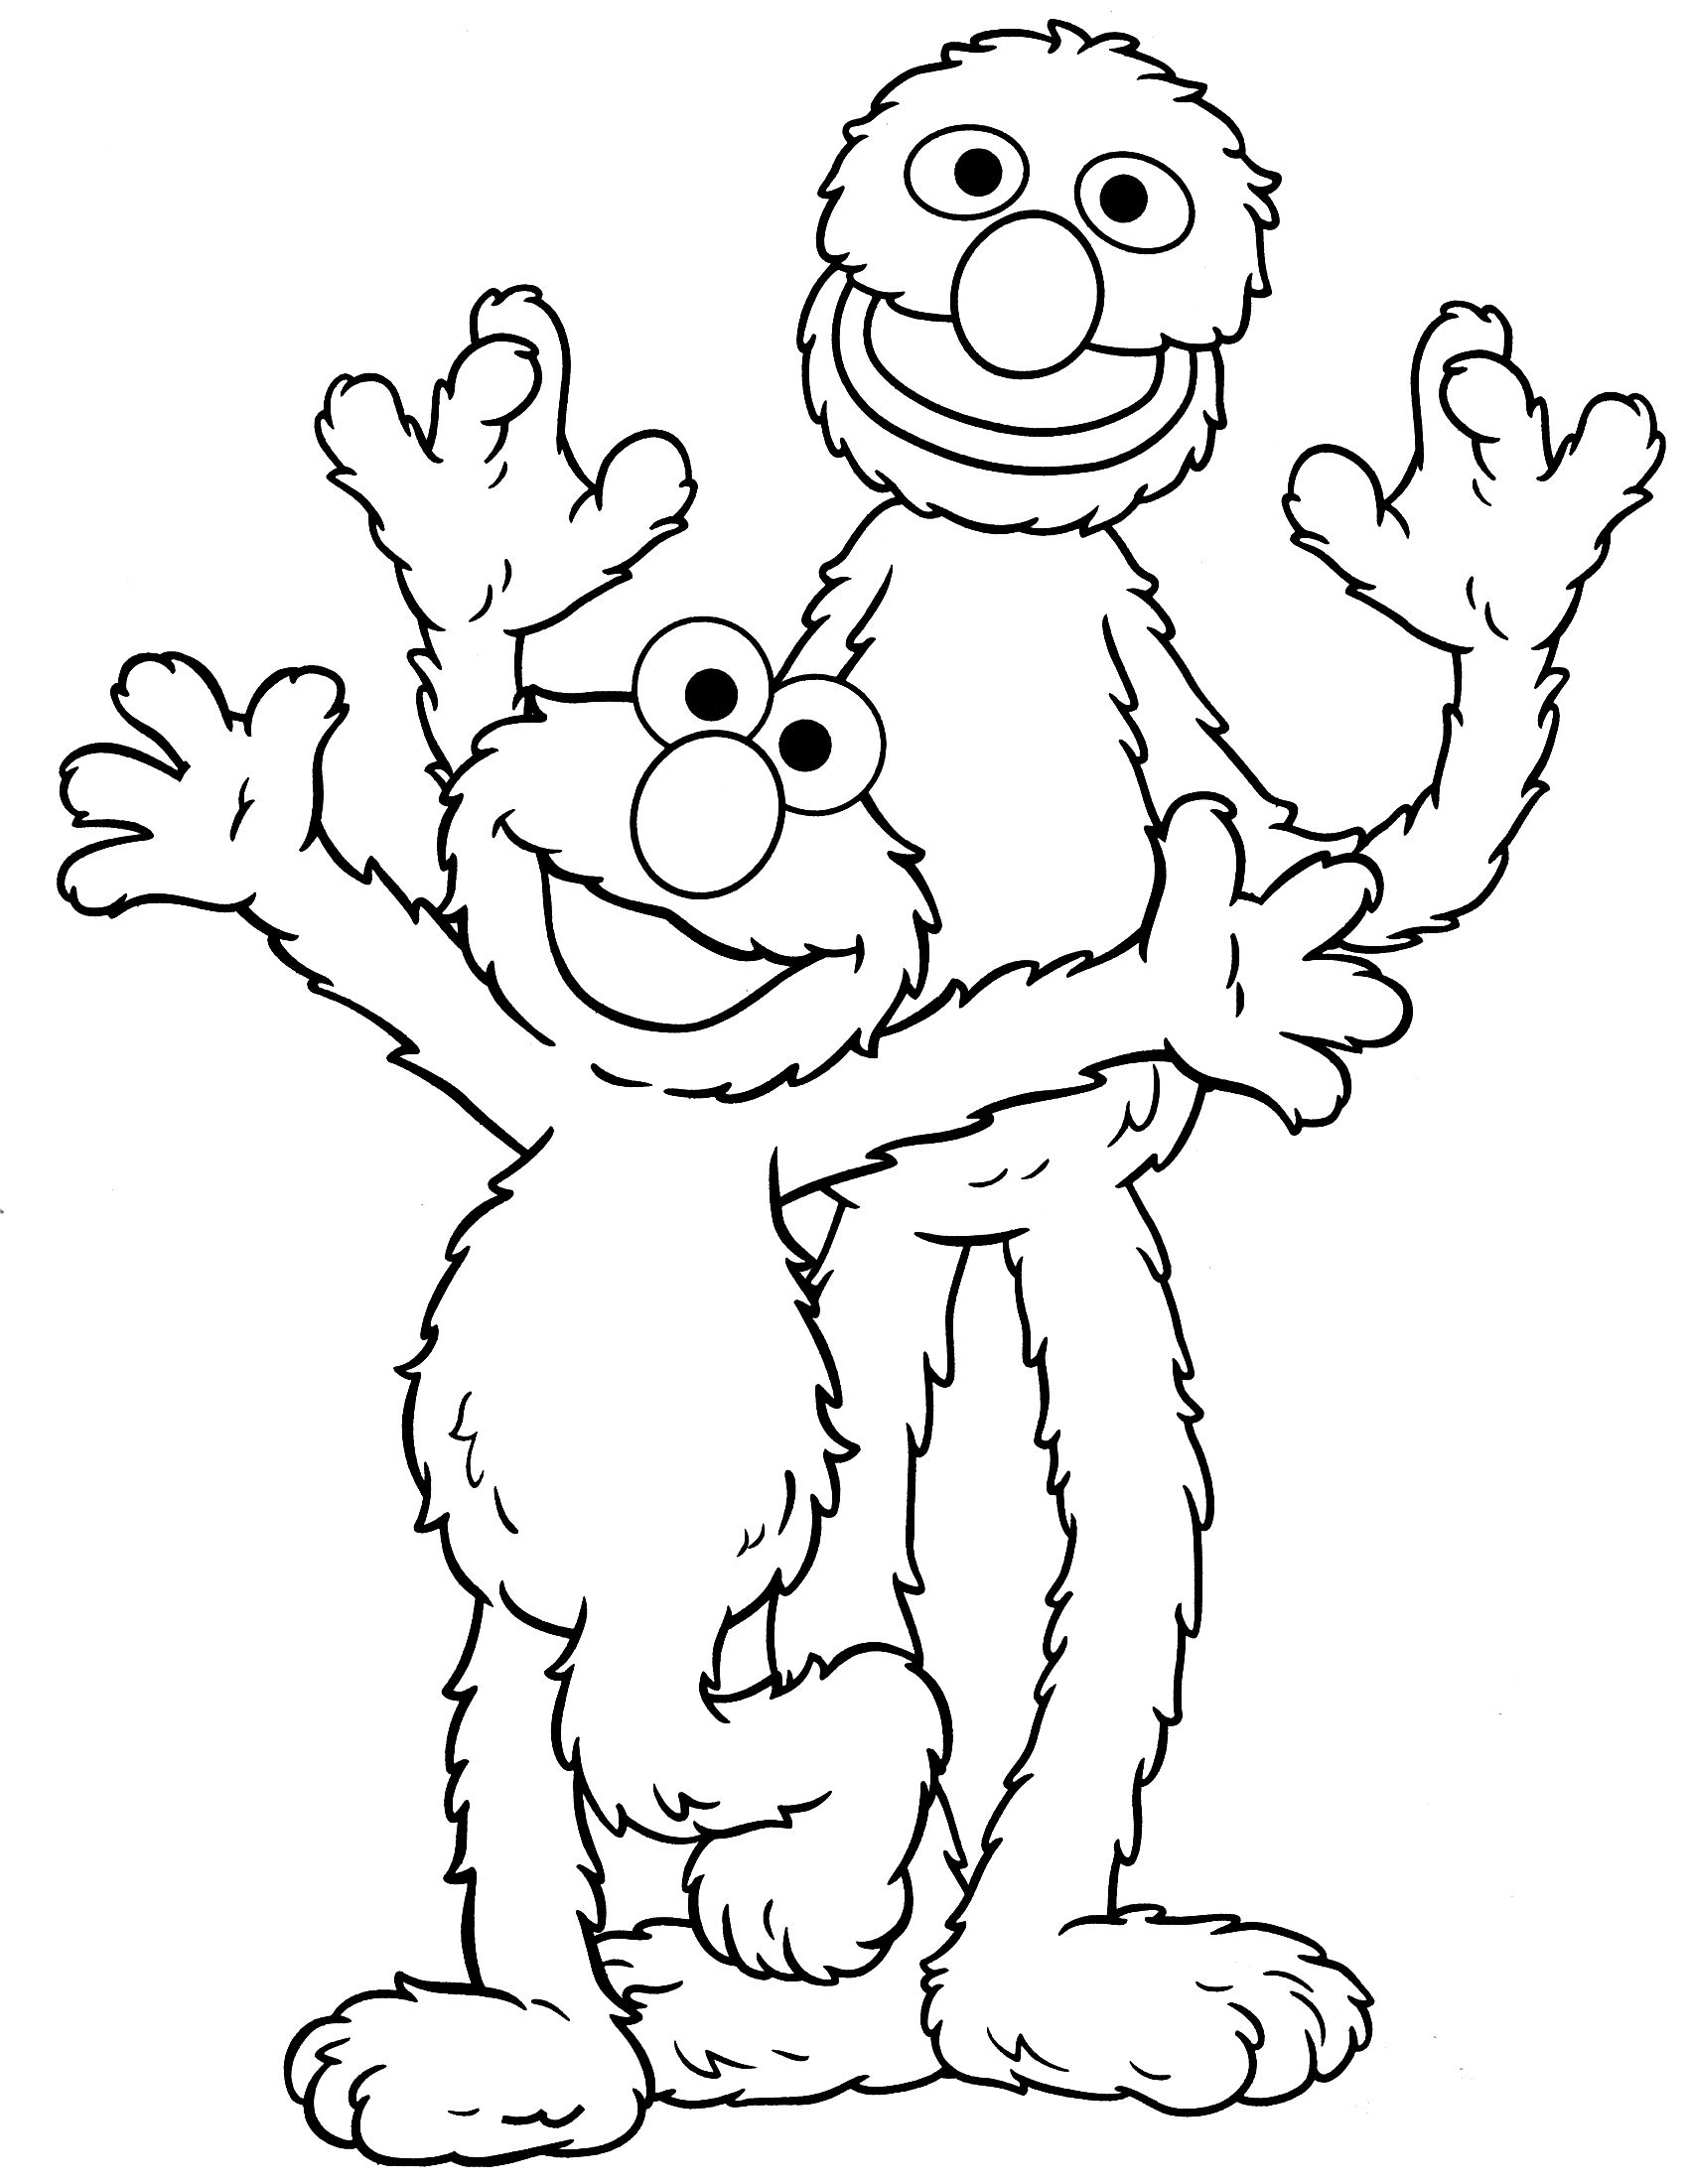 Sesame Street Coloring Pages Bert Free Printable Coloring Pages - Free Printable Sesame Street Coloring Pages